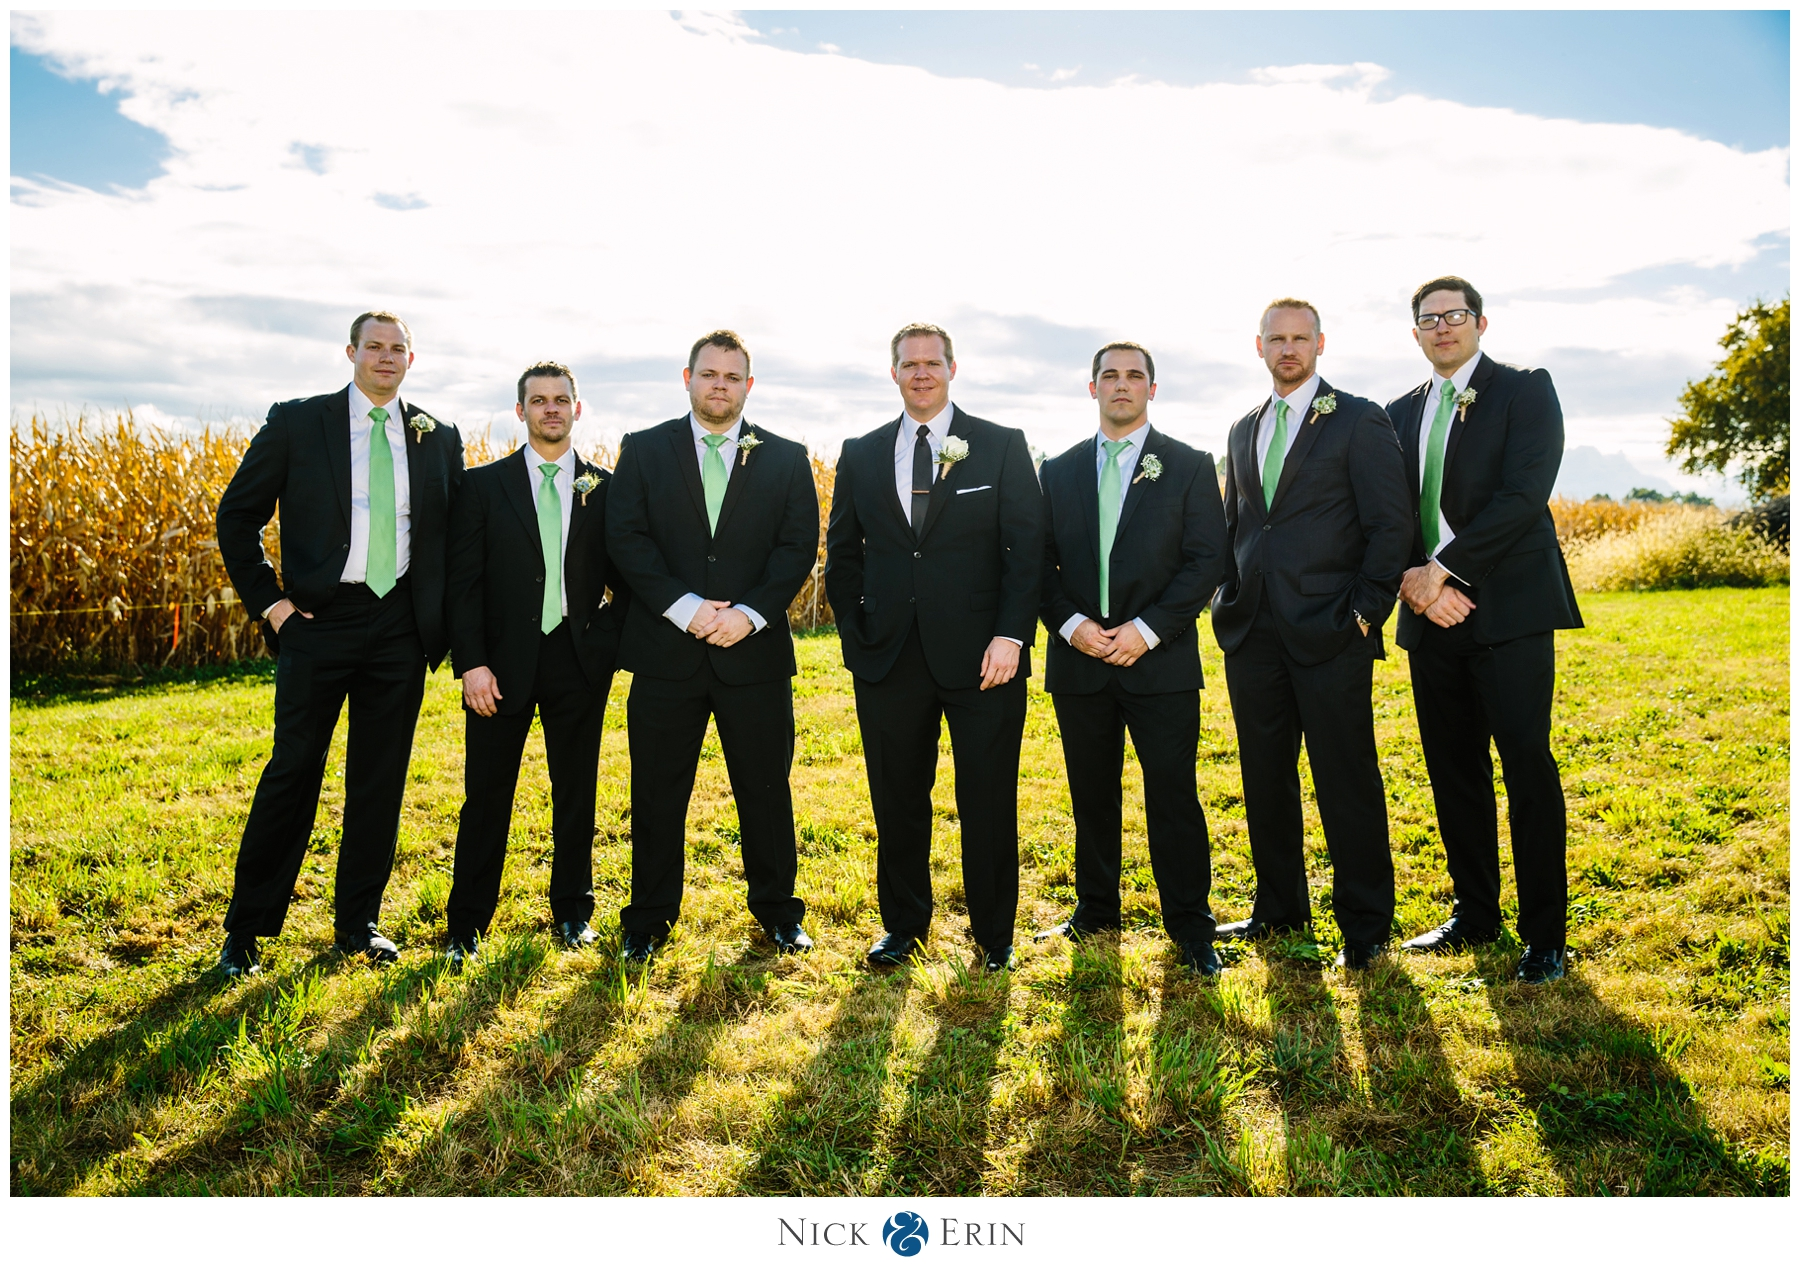 donner_photography_iowa-wedding_katie-chris_0025